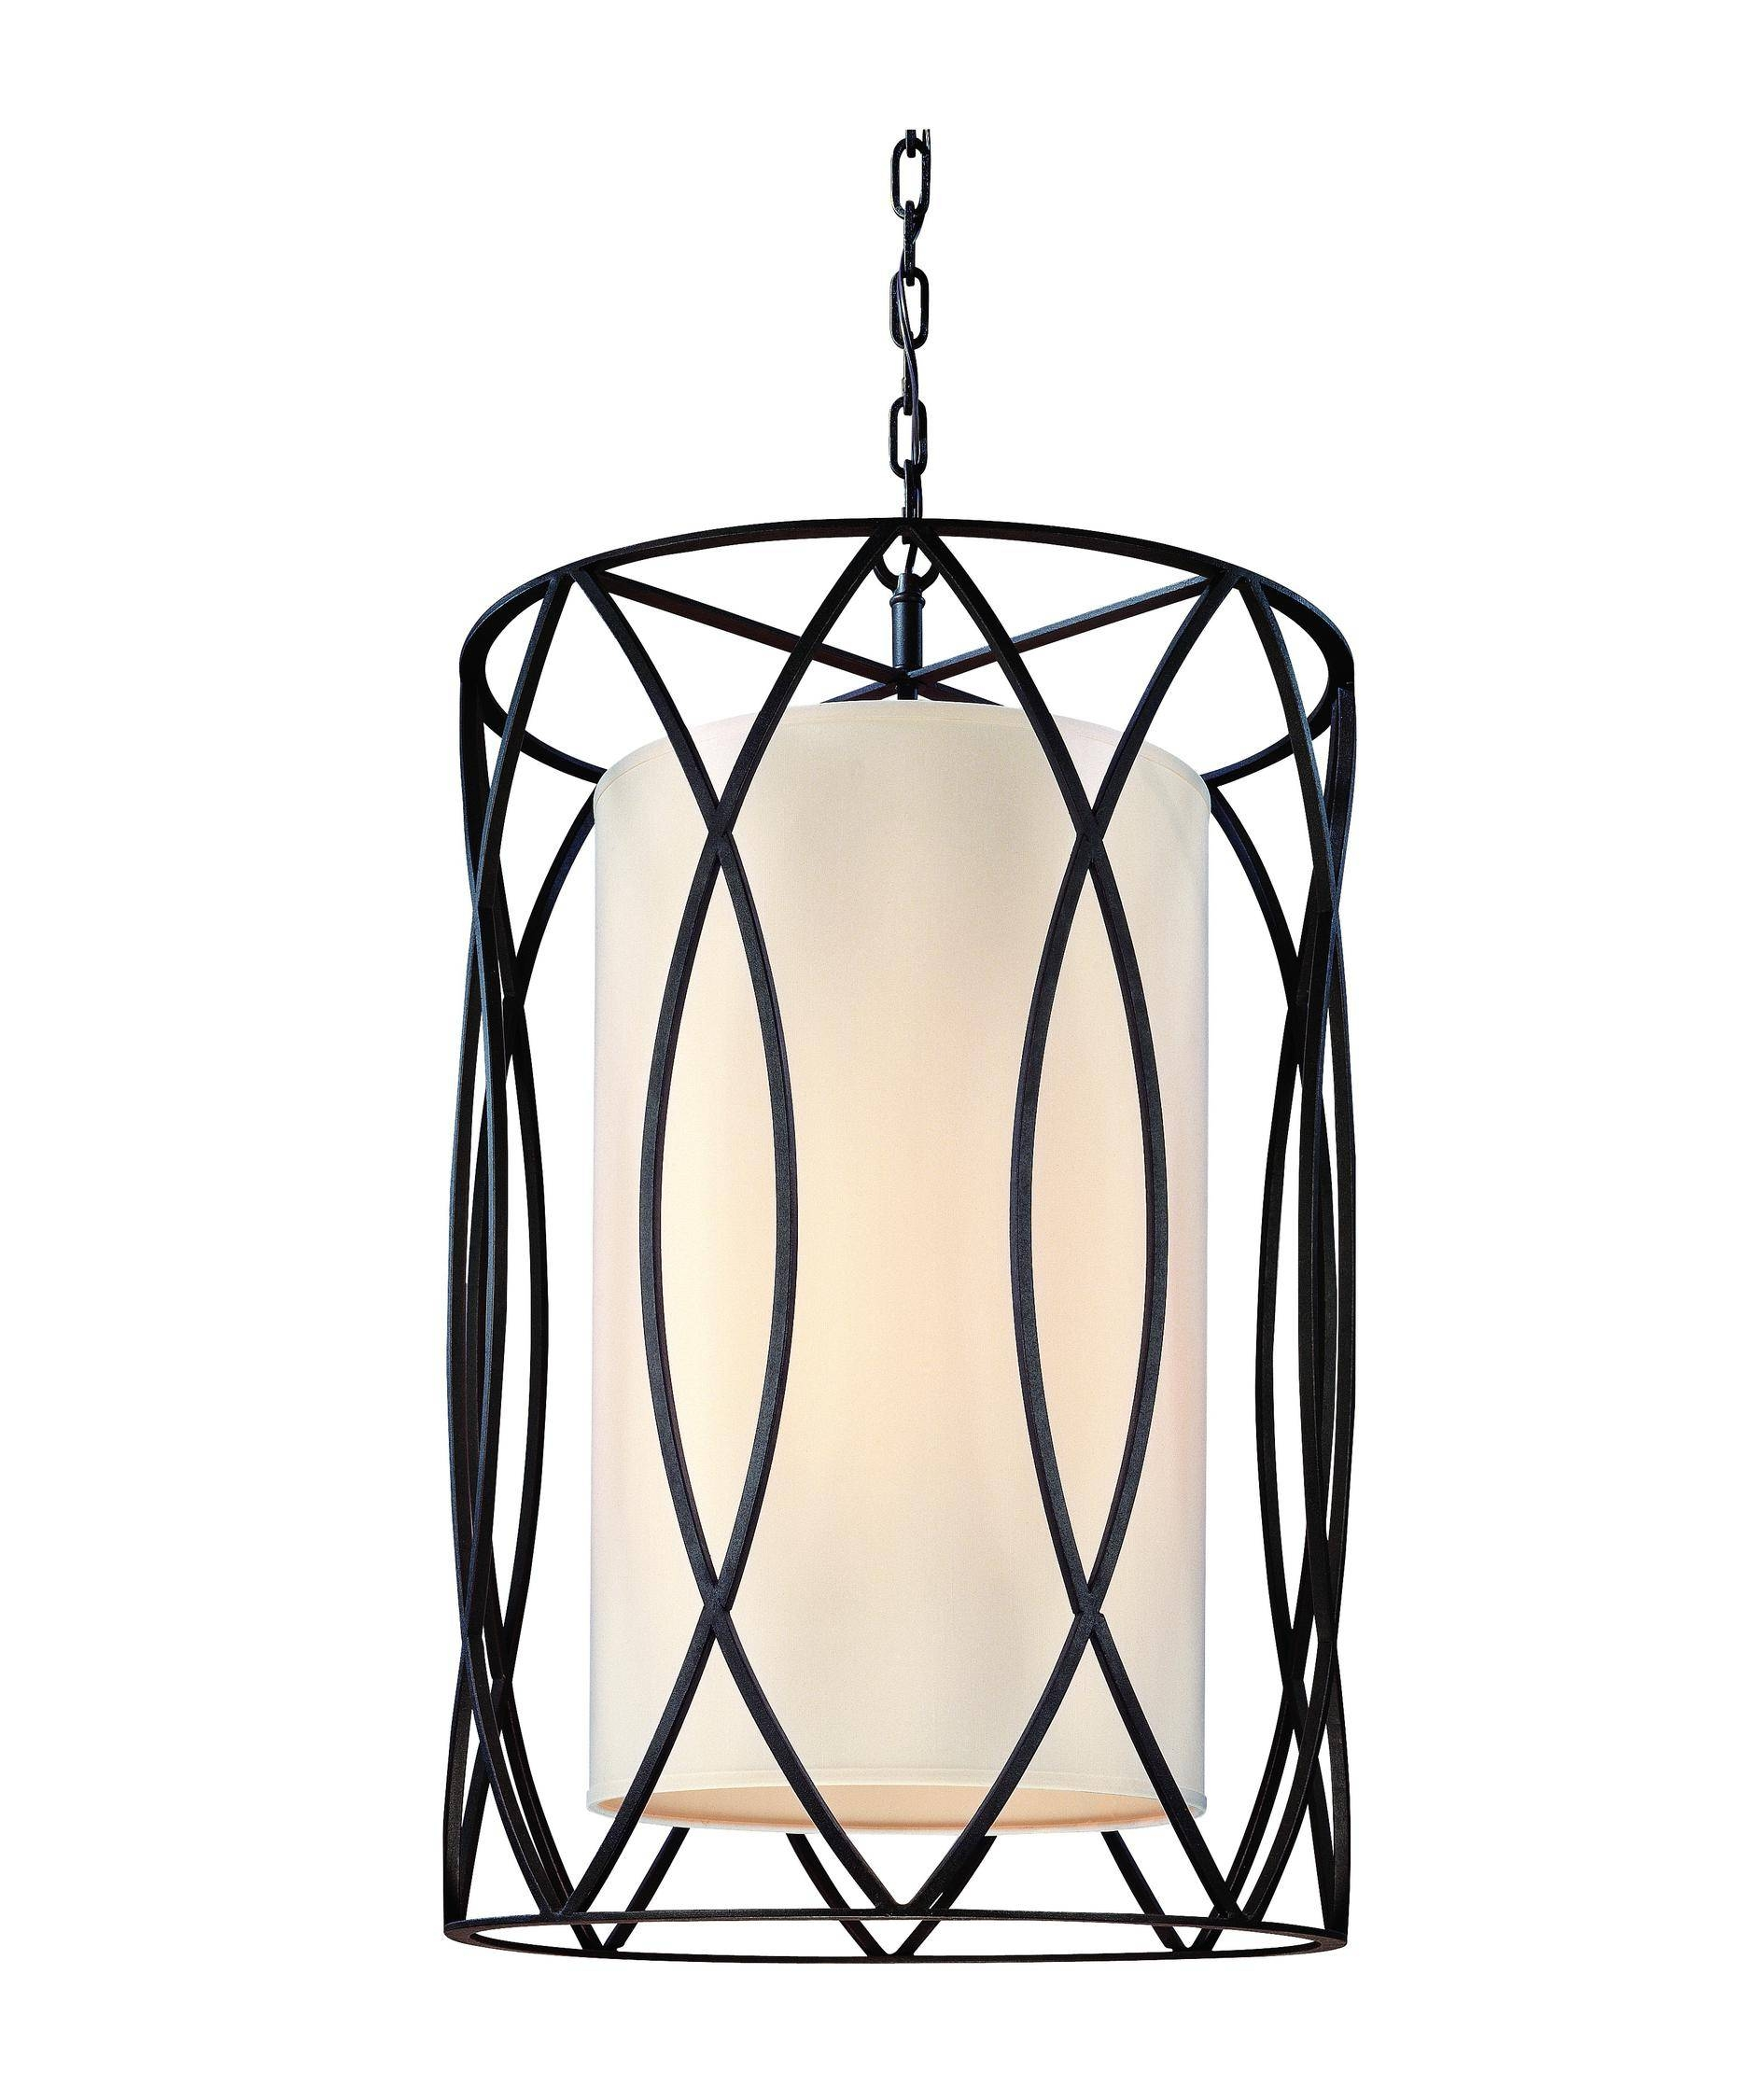 Troy Lighting F1288 Sausalito 22 Inch Wide Foyer Pendant | Capitol Intended For Sausalito Pendant Lights (View 10 of 15)